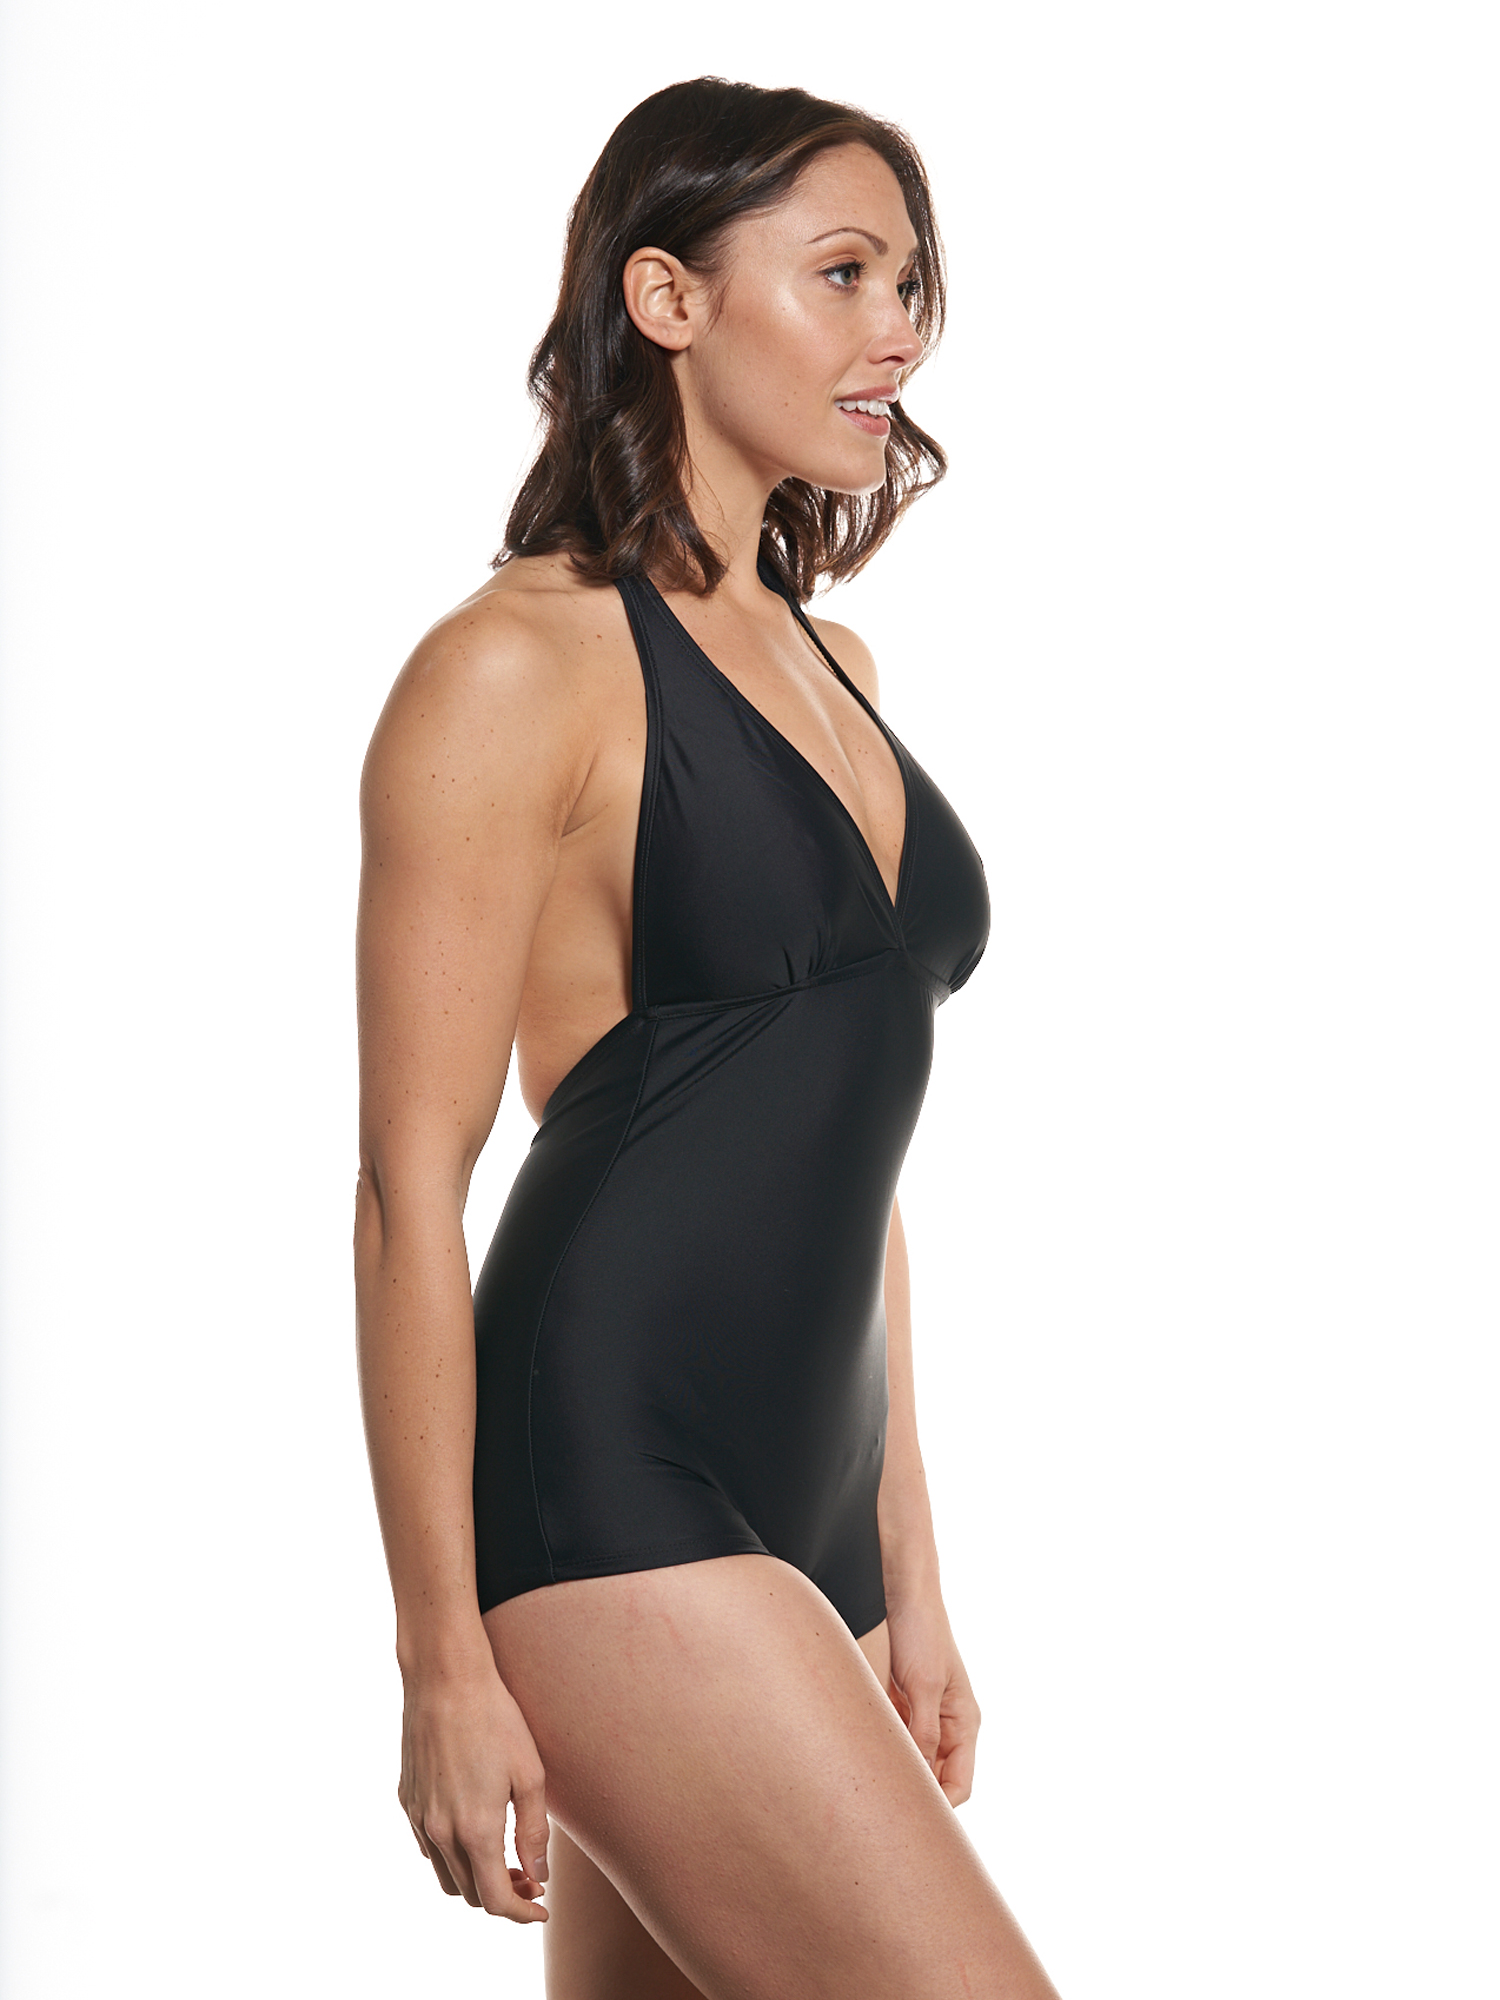 b13b76bf0cacc Black One Piece Bathing Suit With Skirted Bottom